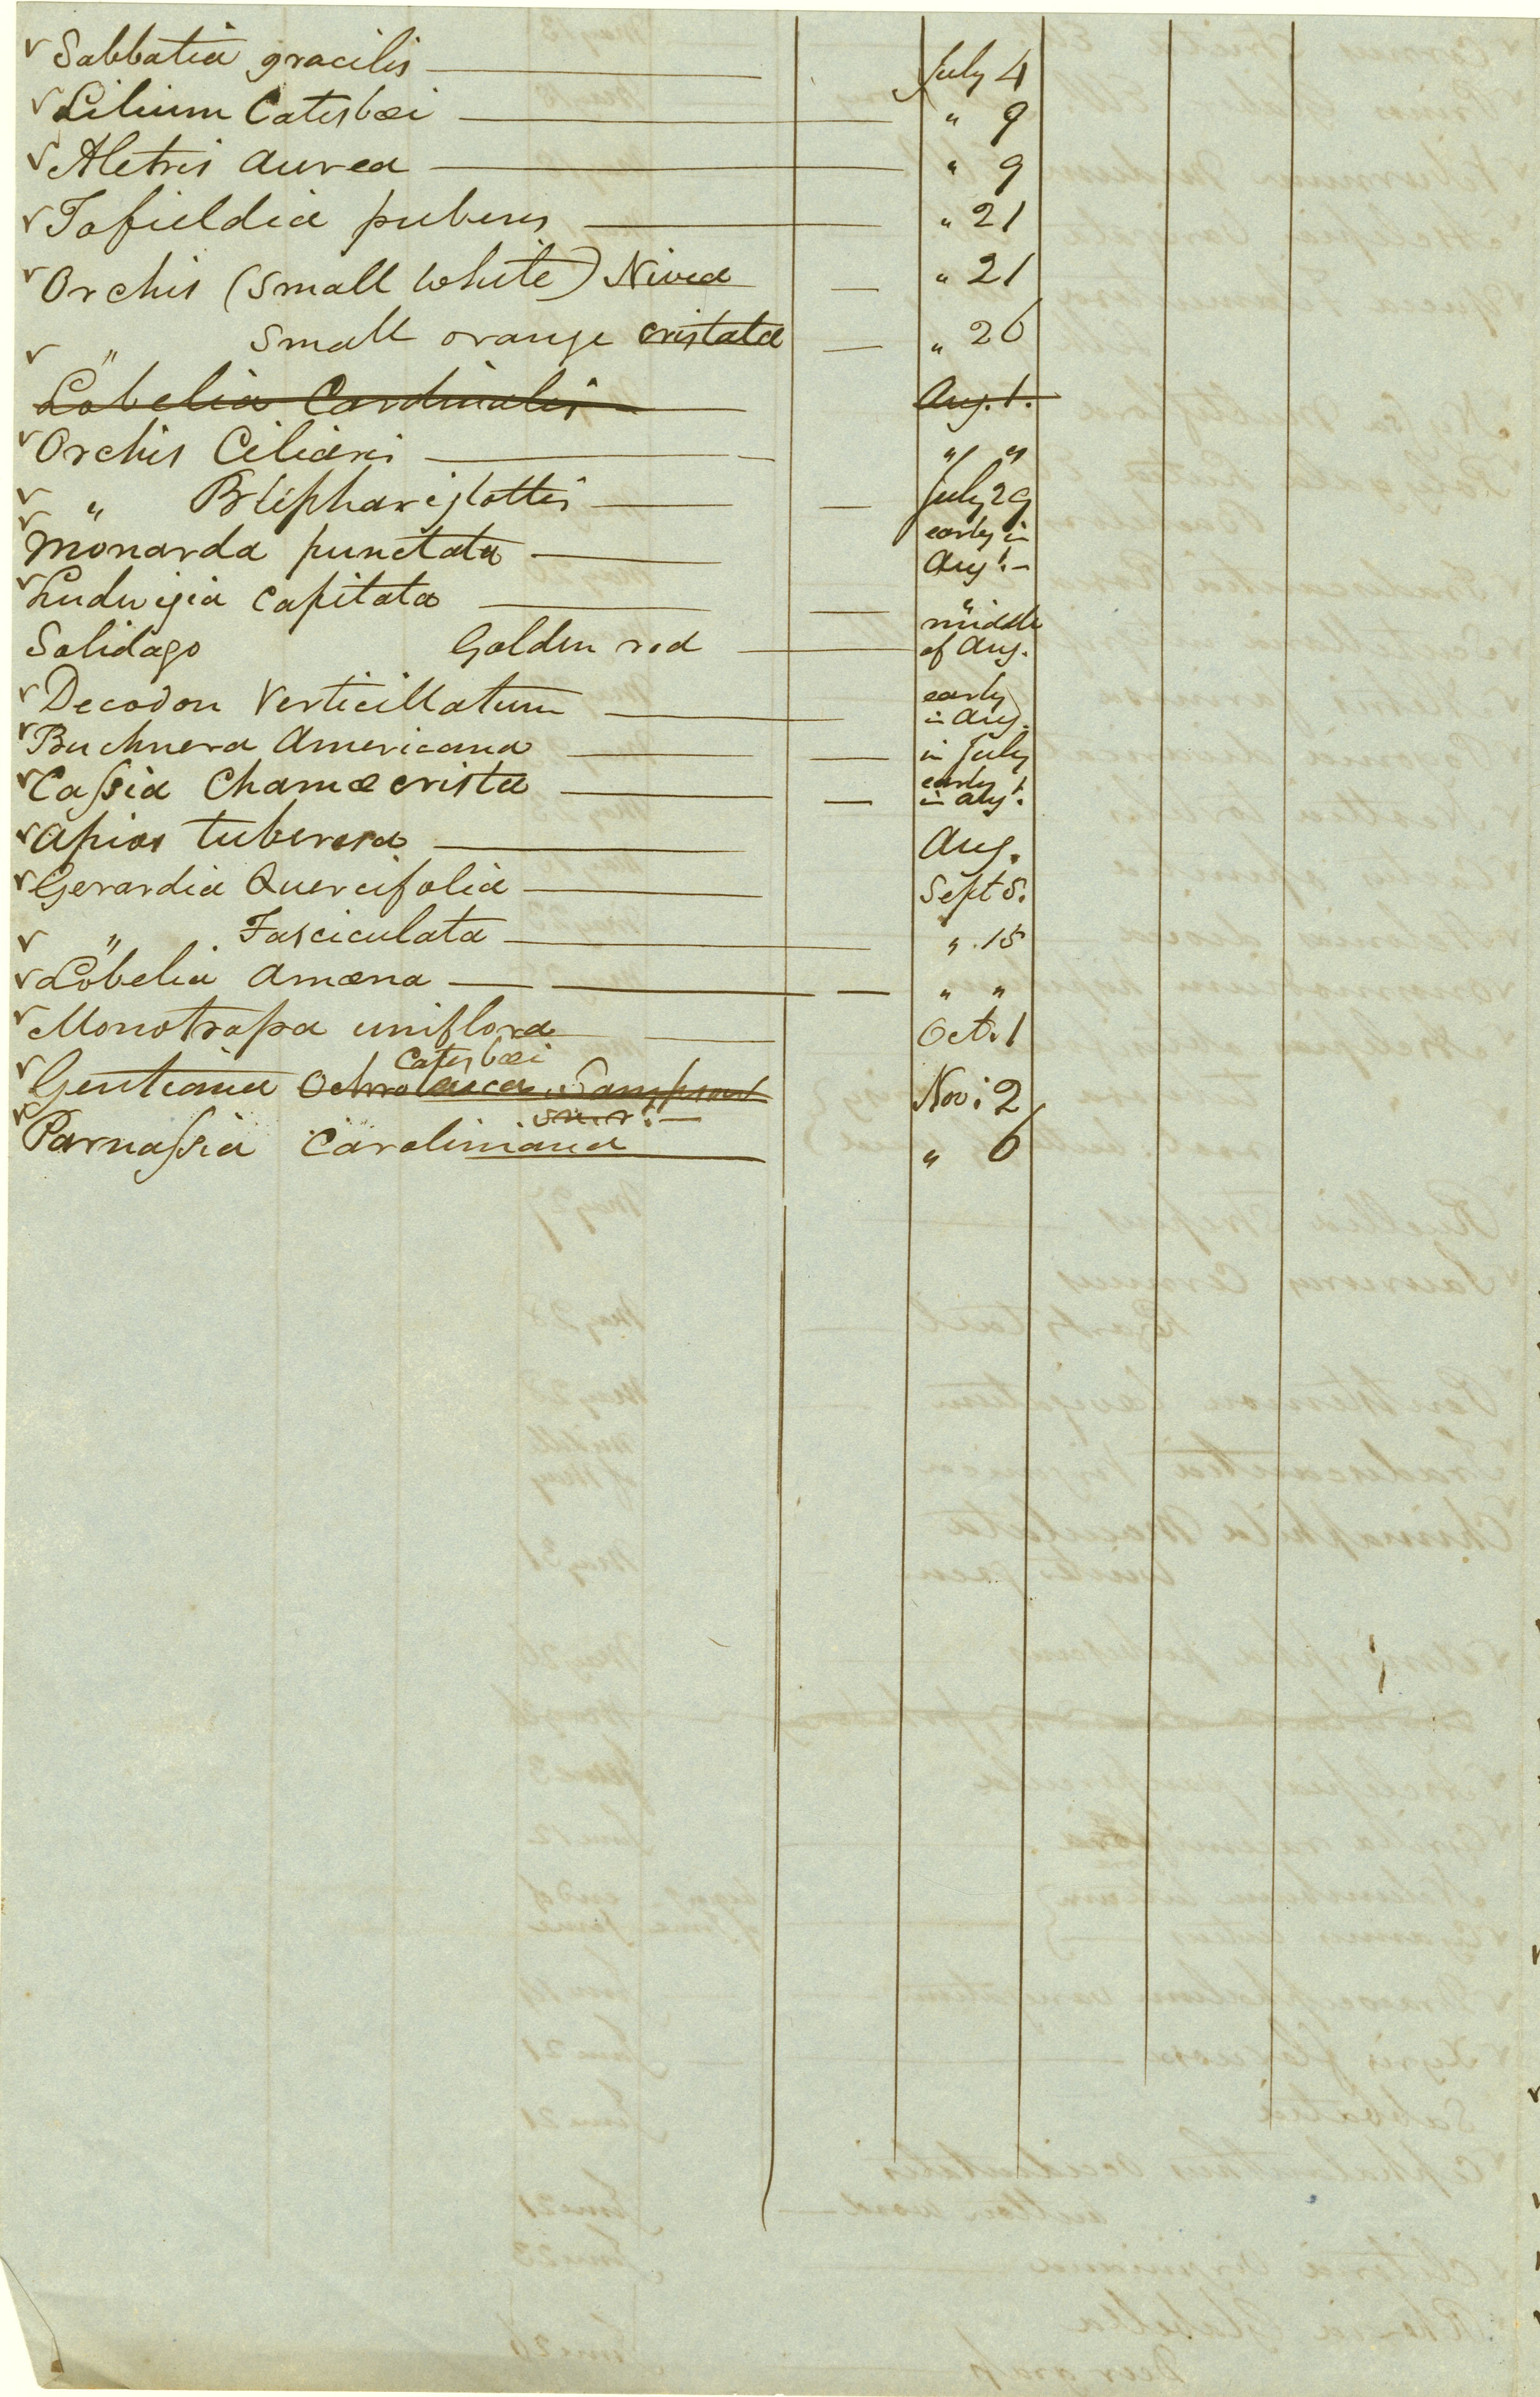 Gardening Record, 1855, page 4